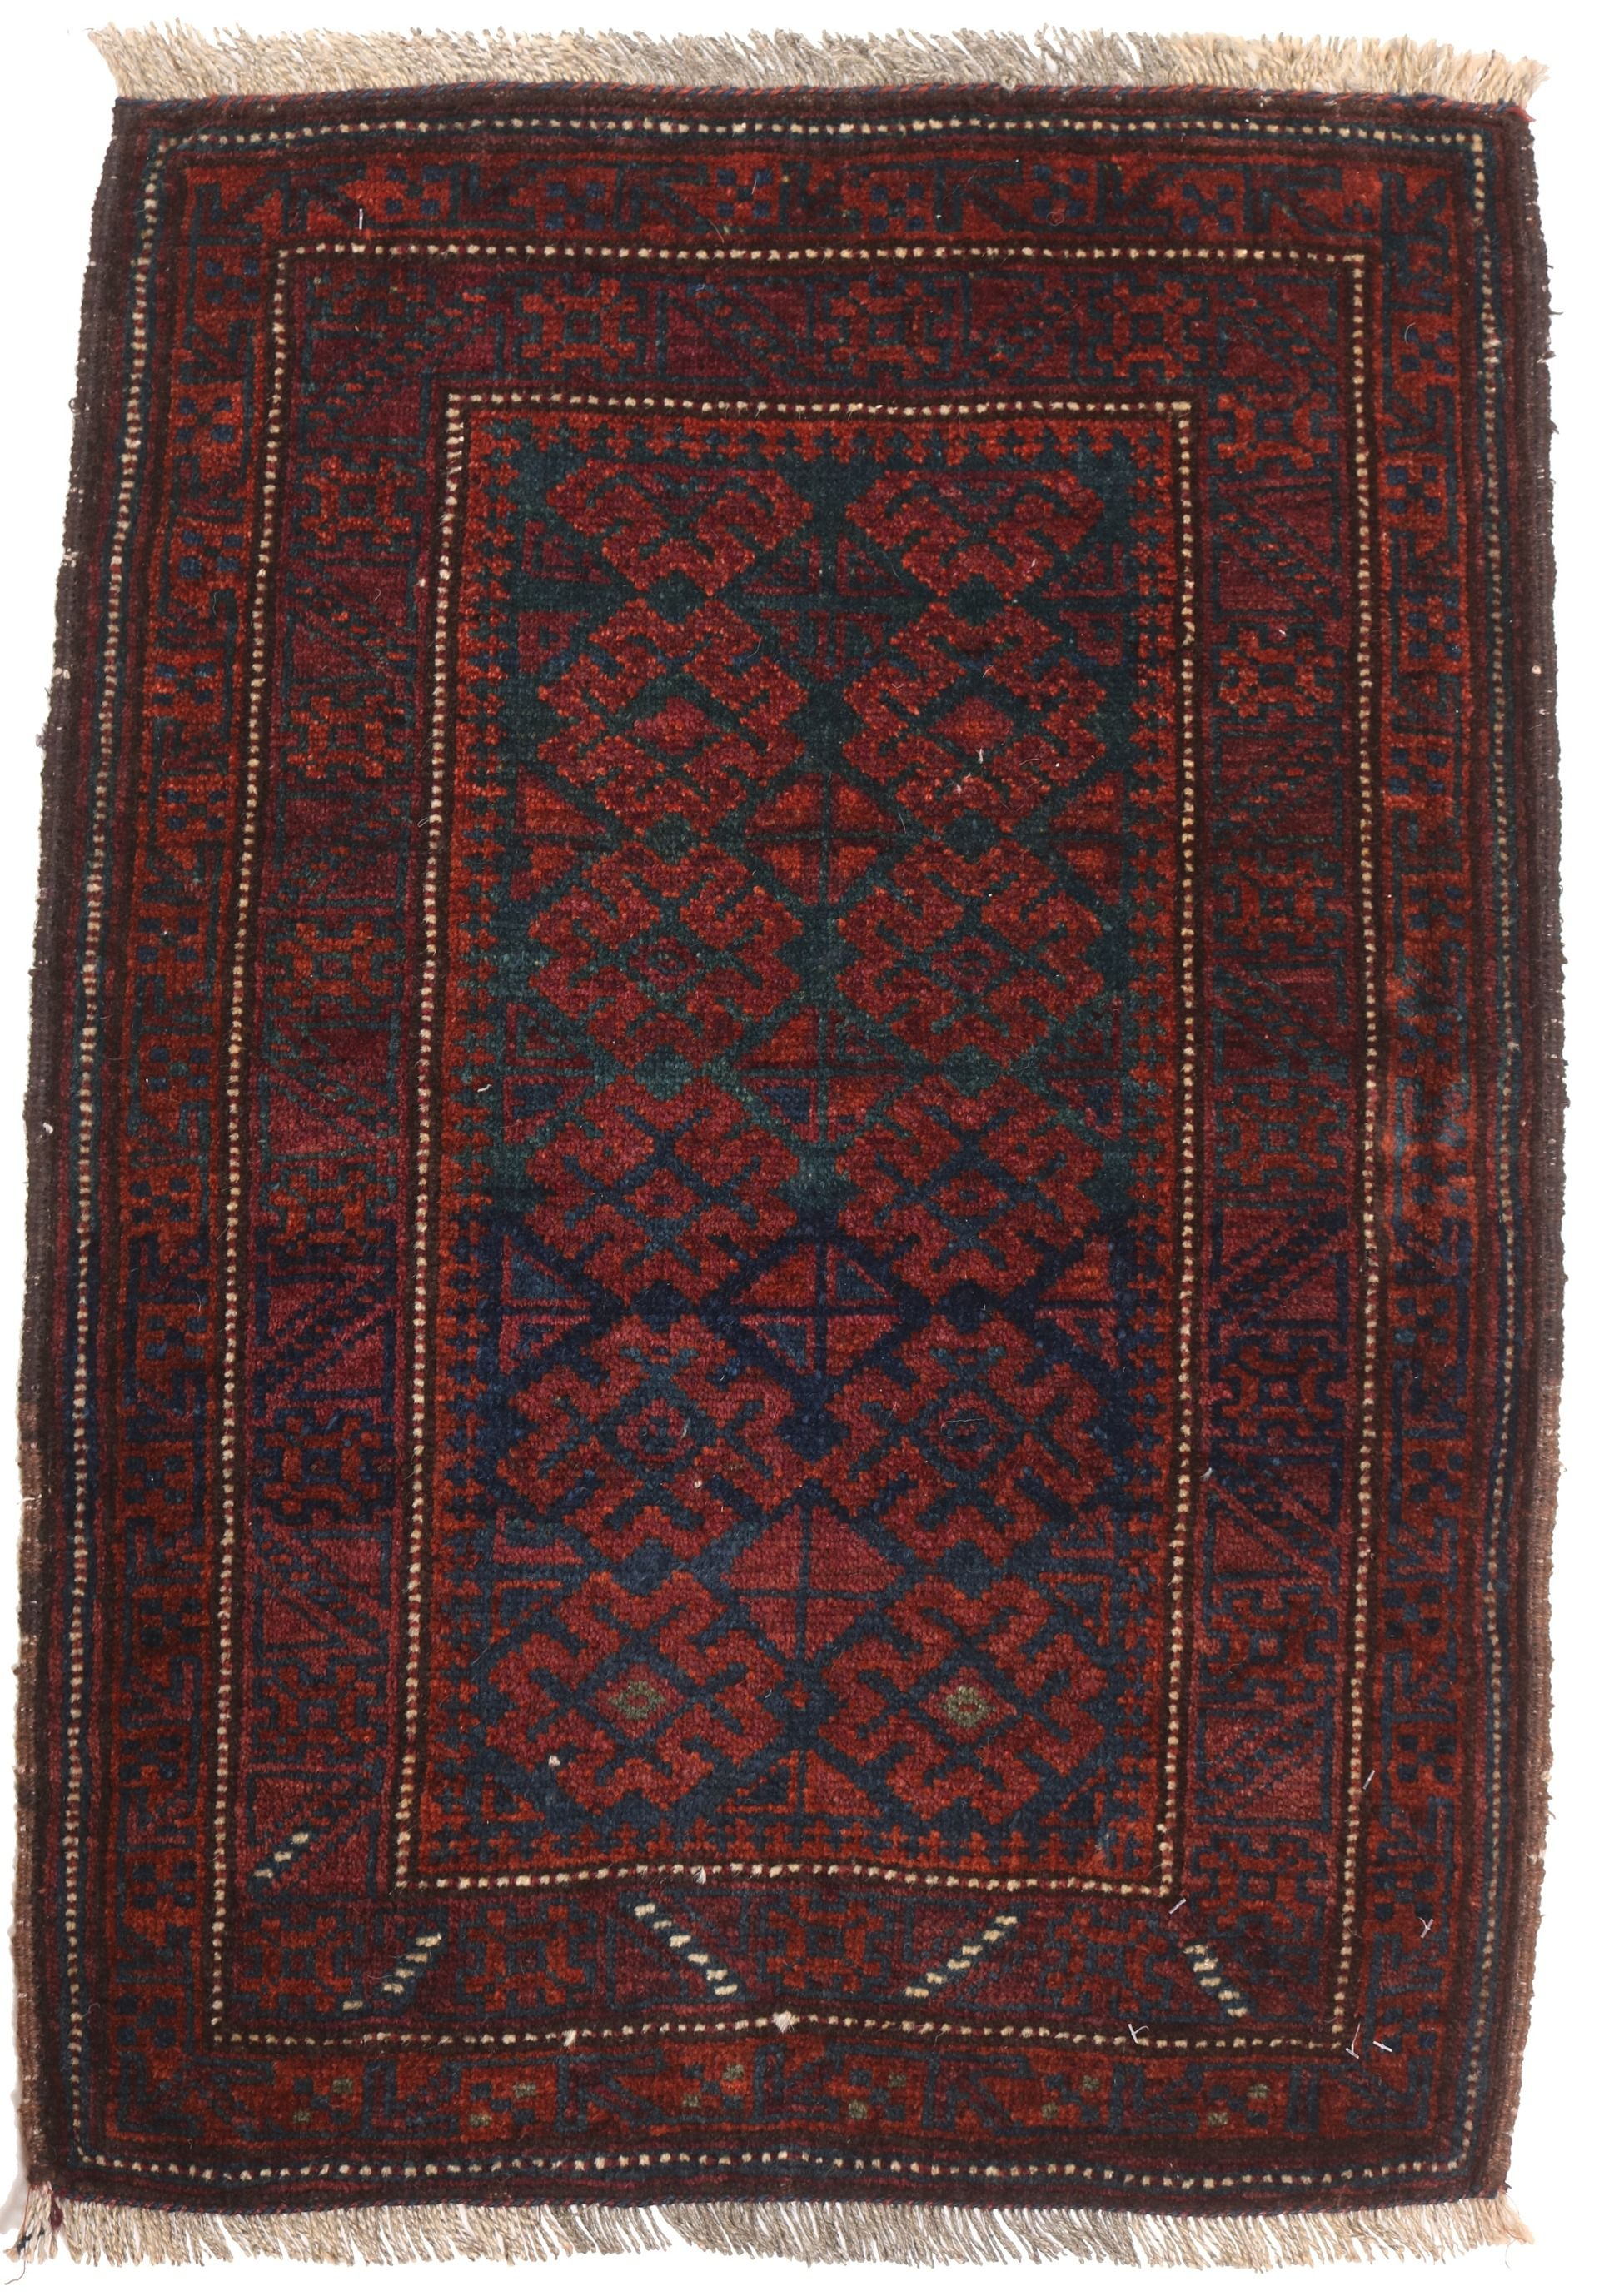 Balouch Baluch rug red - 3' x 2'1